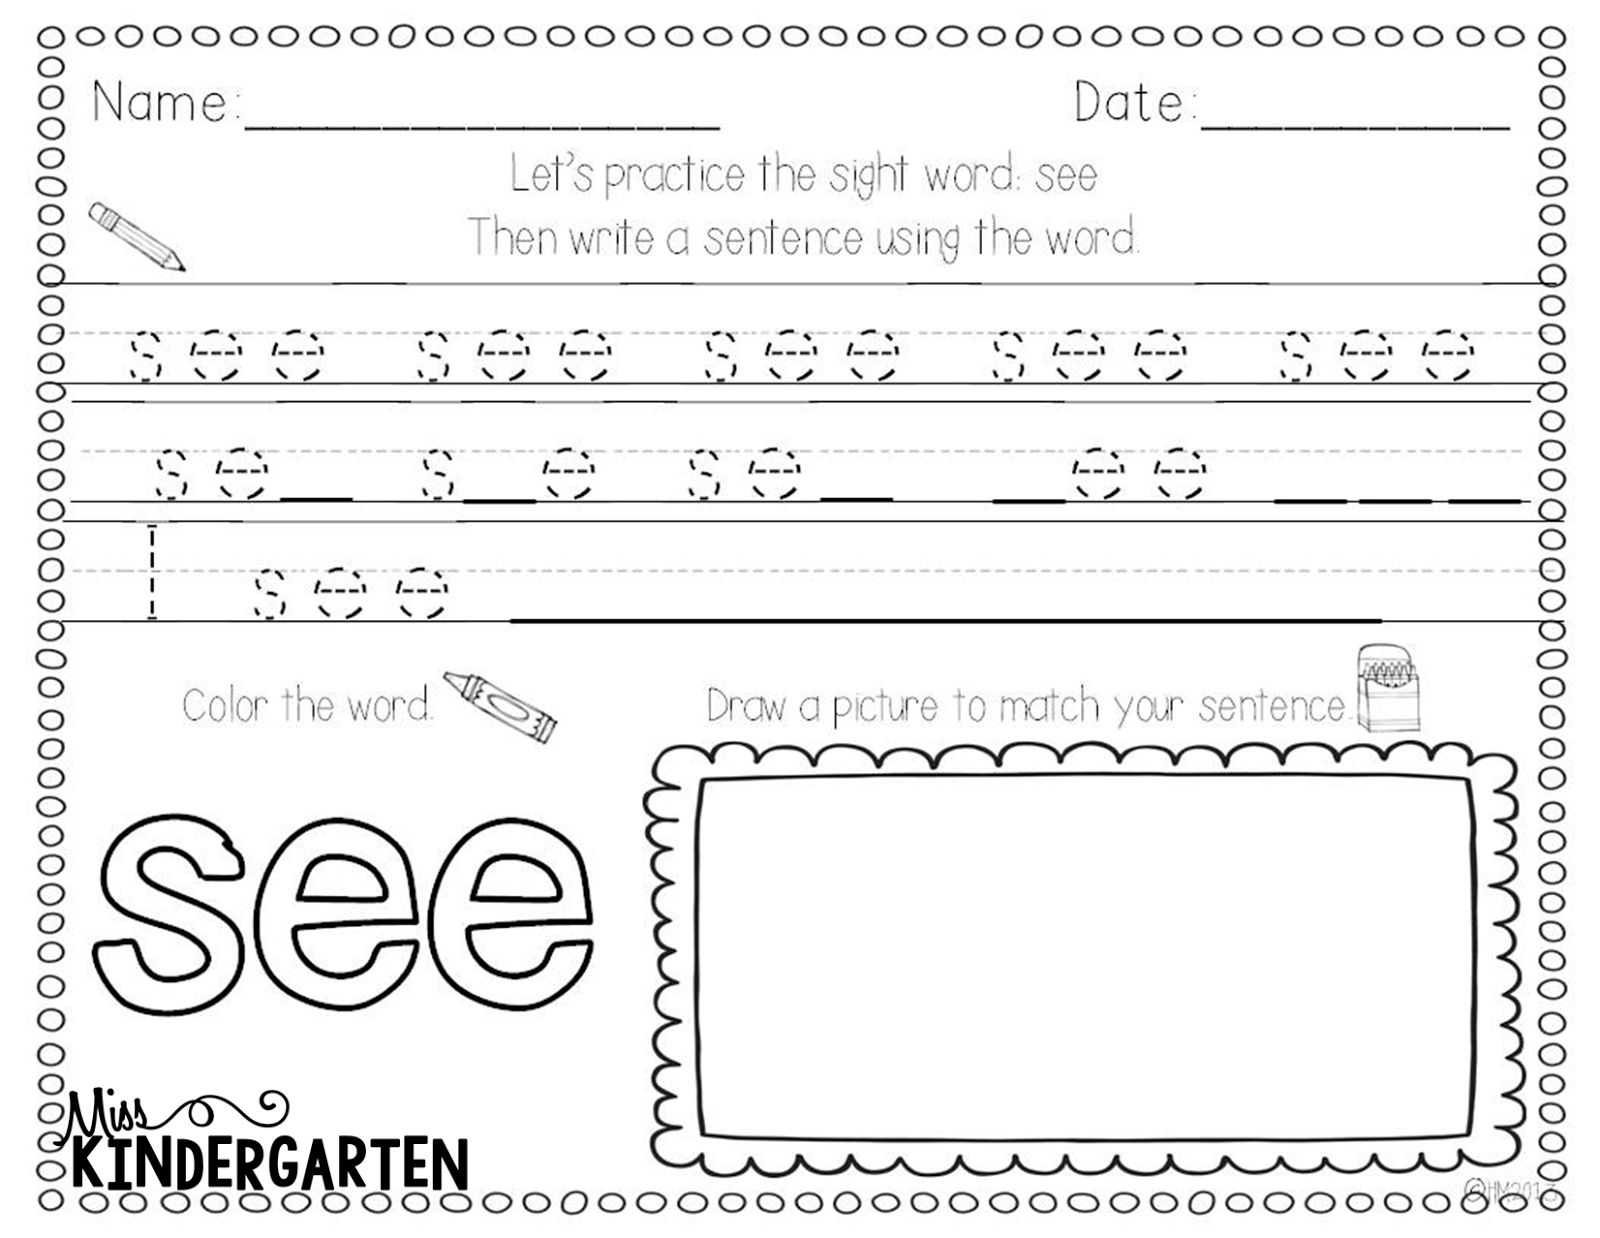 Worksheet Preschool Site Words sight word practice miss kindergarten httpwww teacherspayteachers comproductsight word